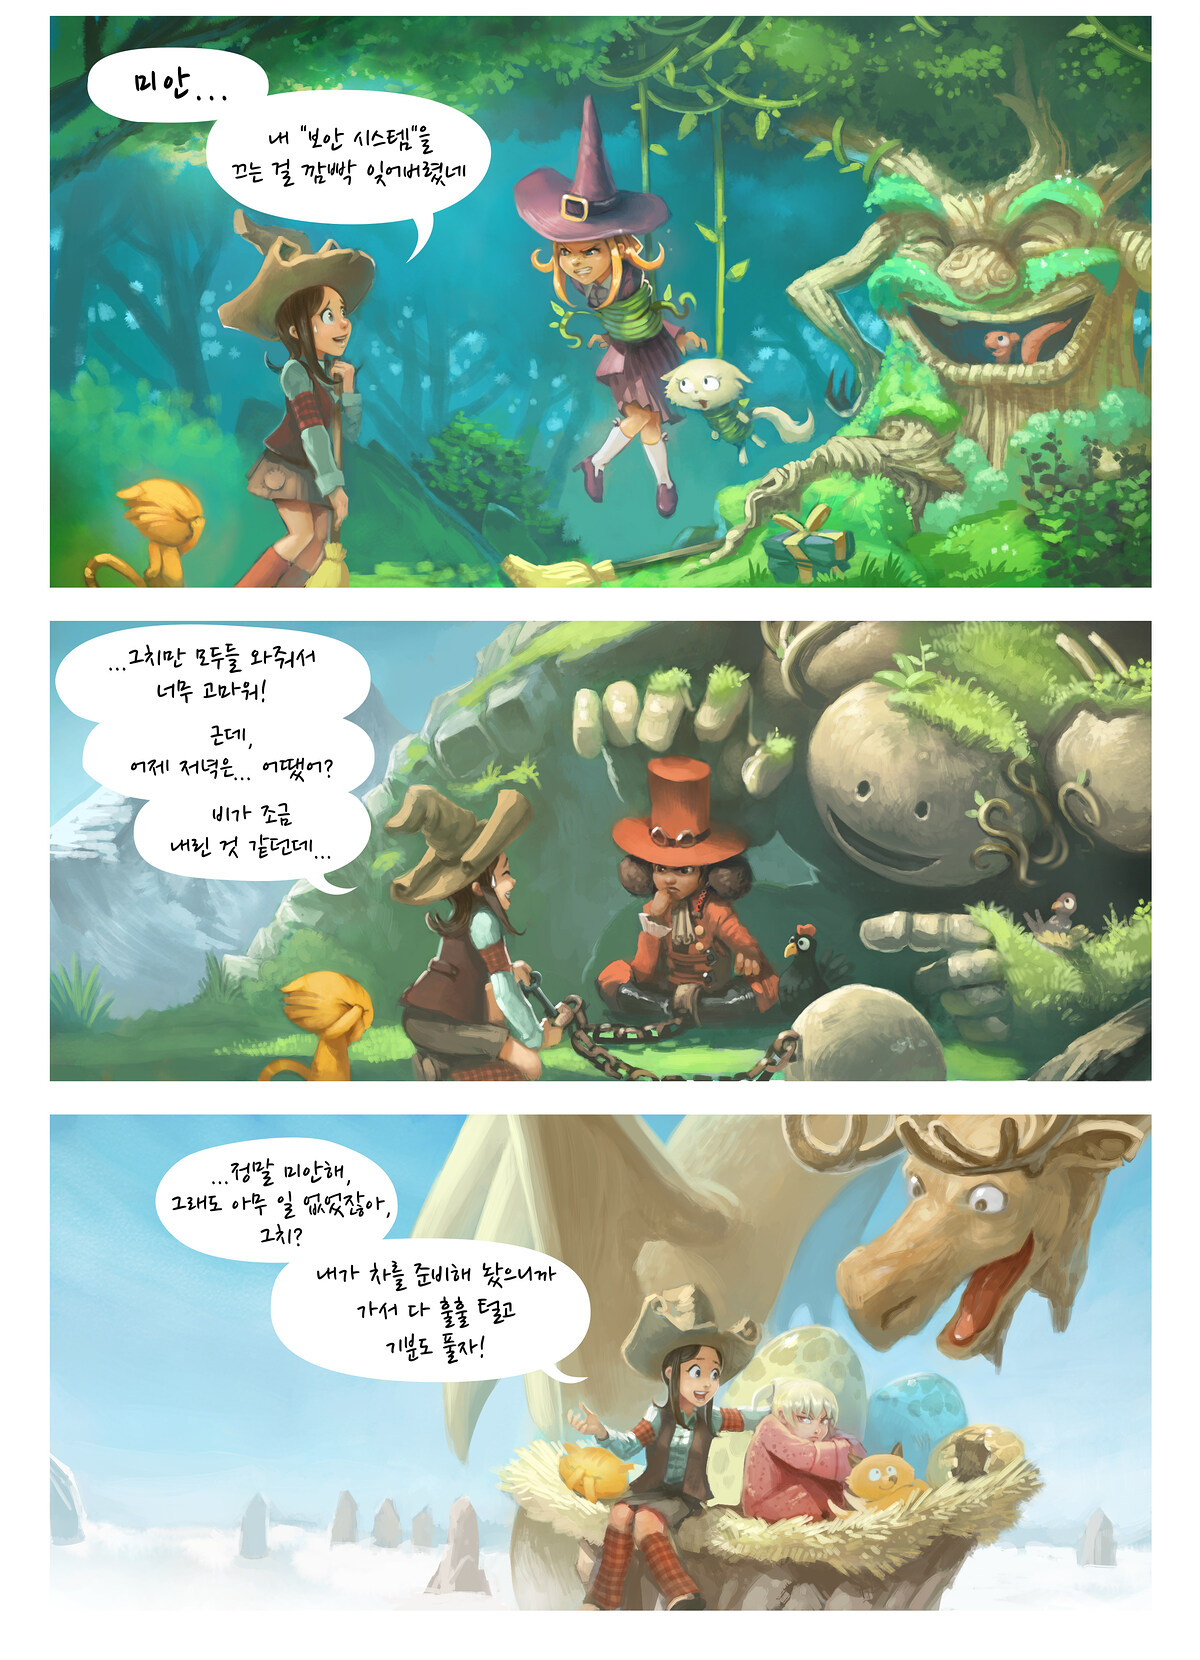 A webcomic page of Pepper&Carrot, 에피소드 9 [kr], 페이지 2